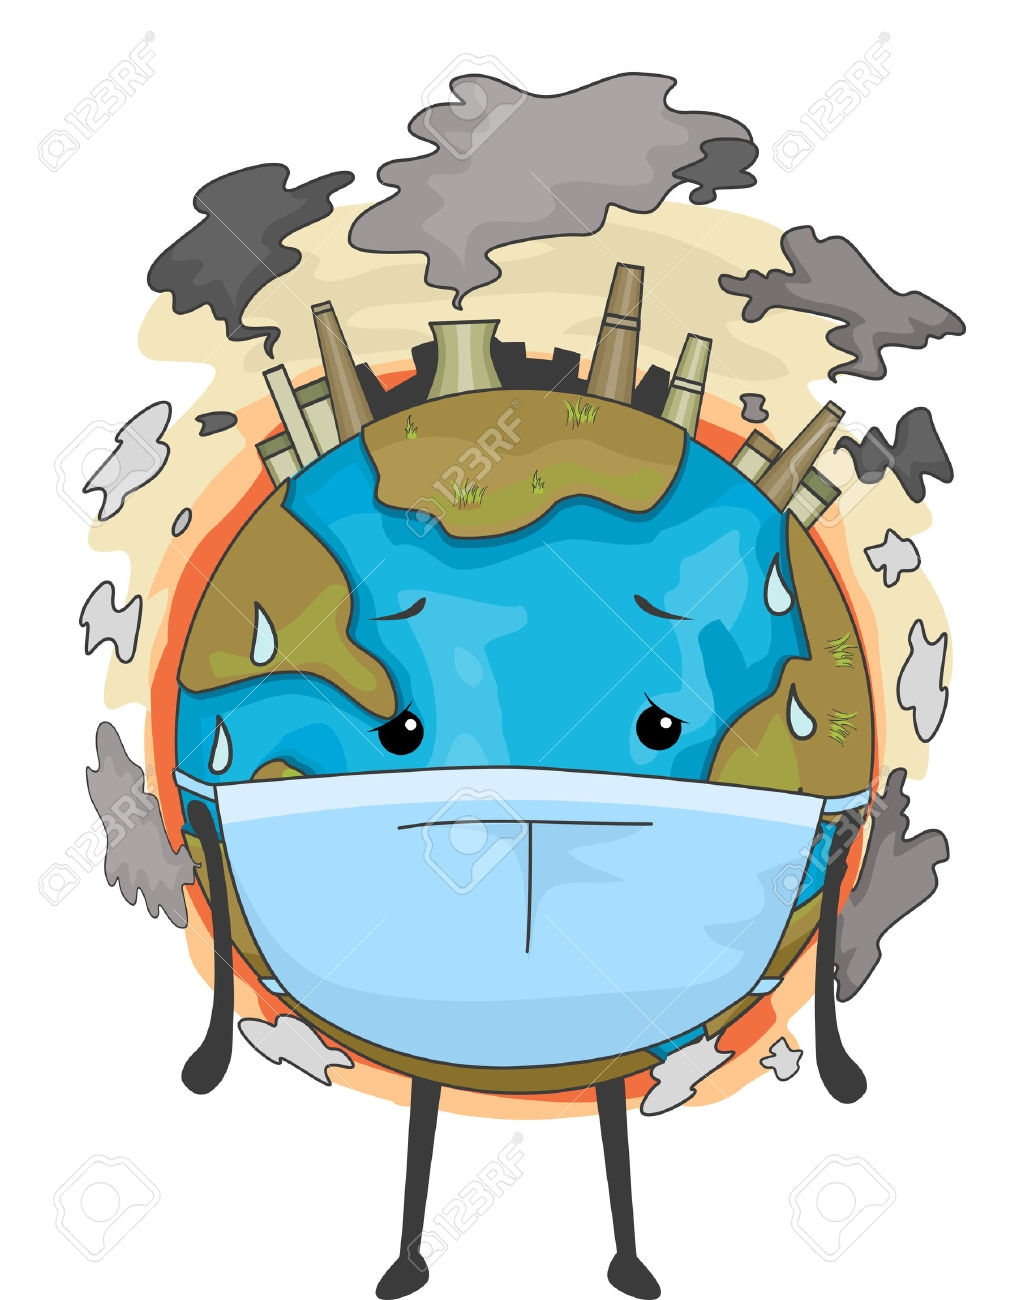 Air simple drawing png. Pollution clipart